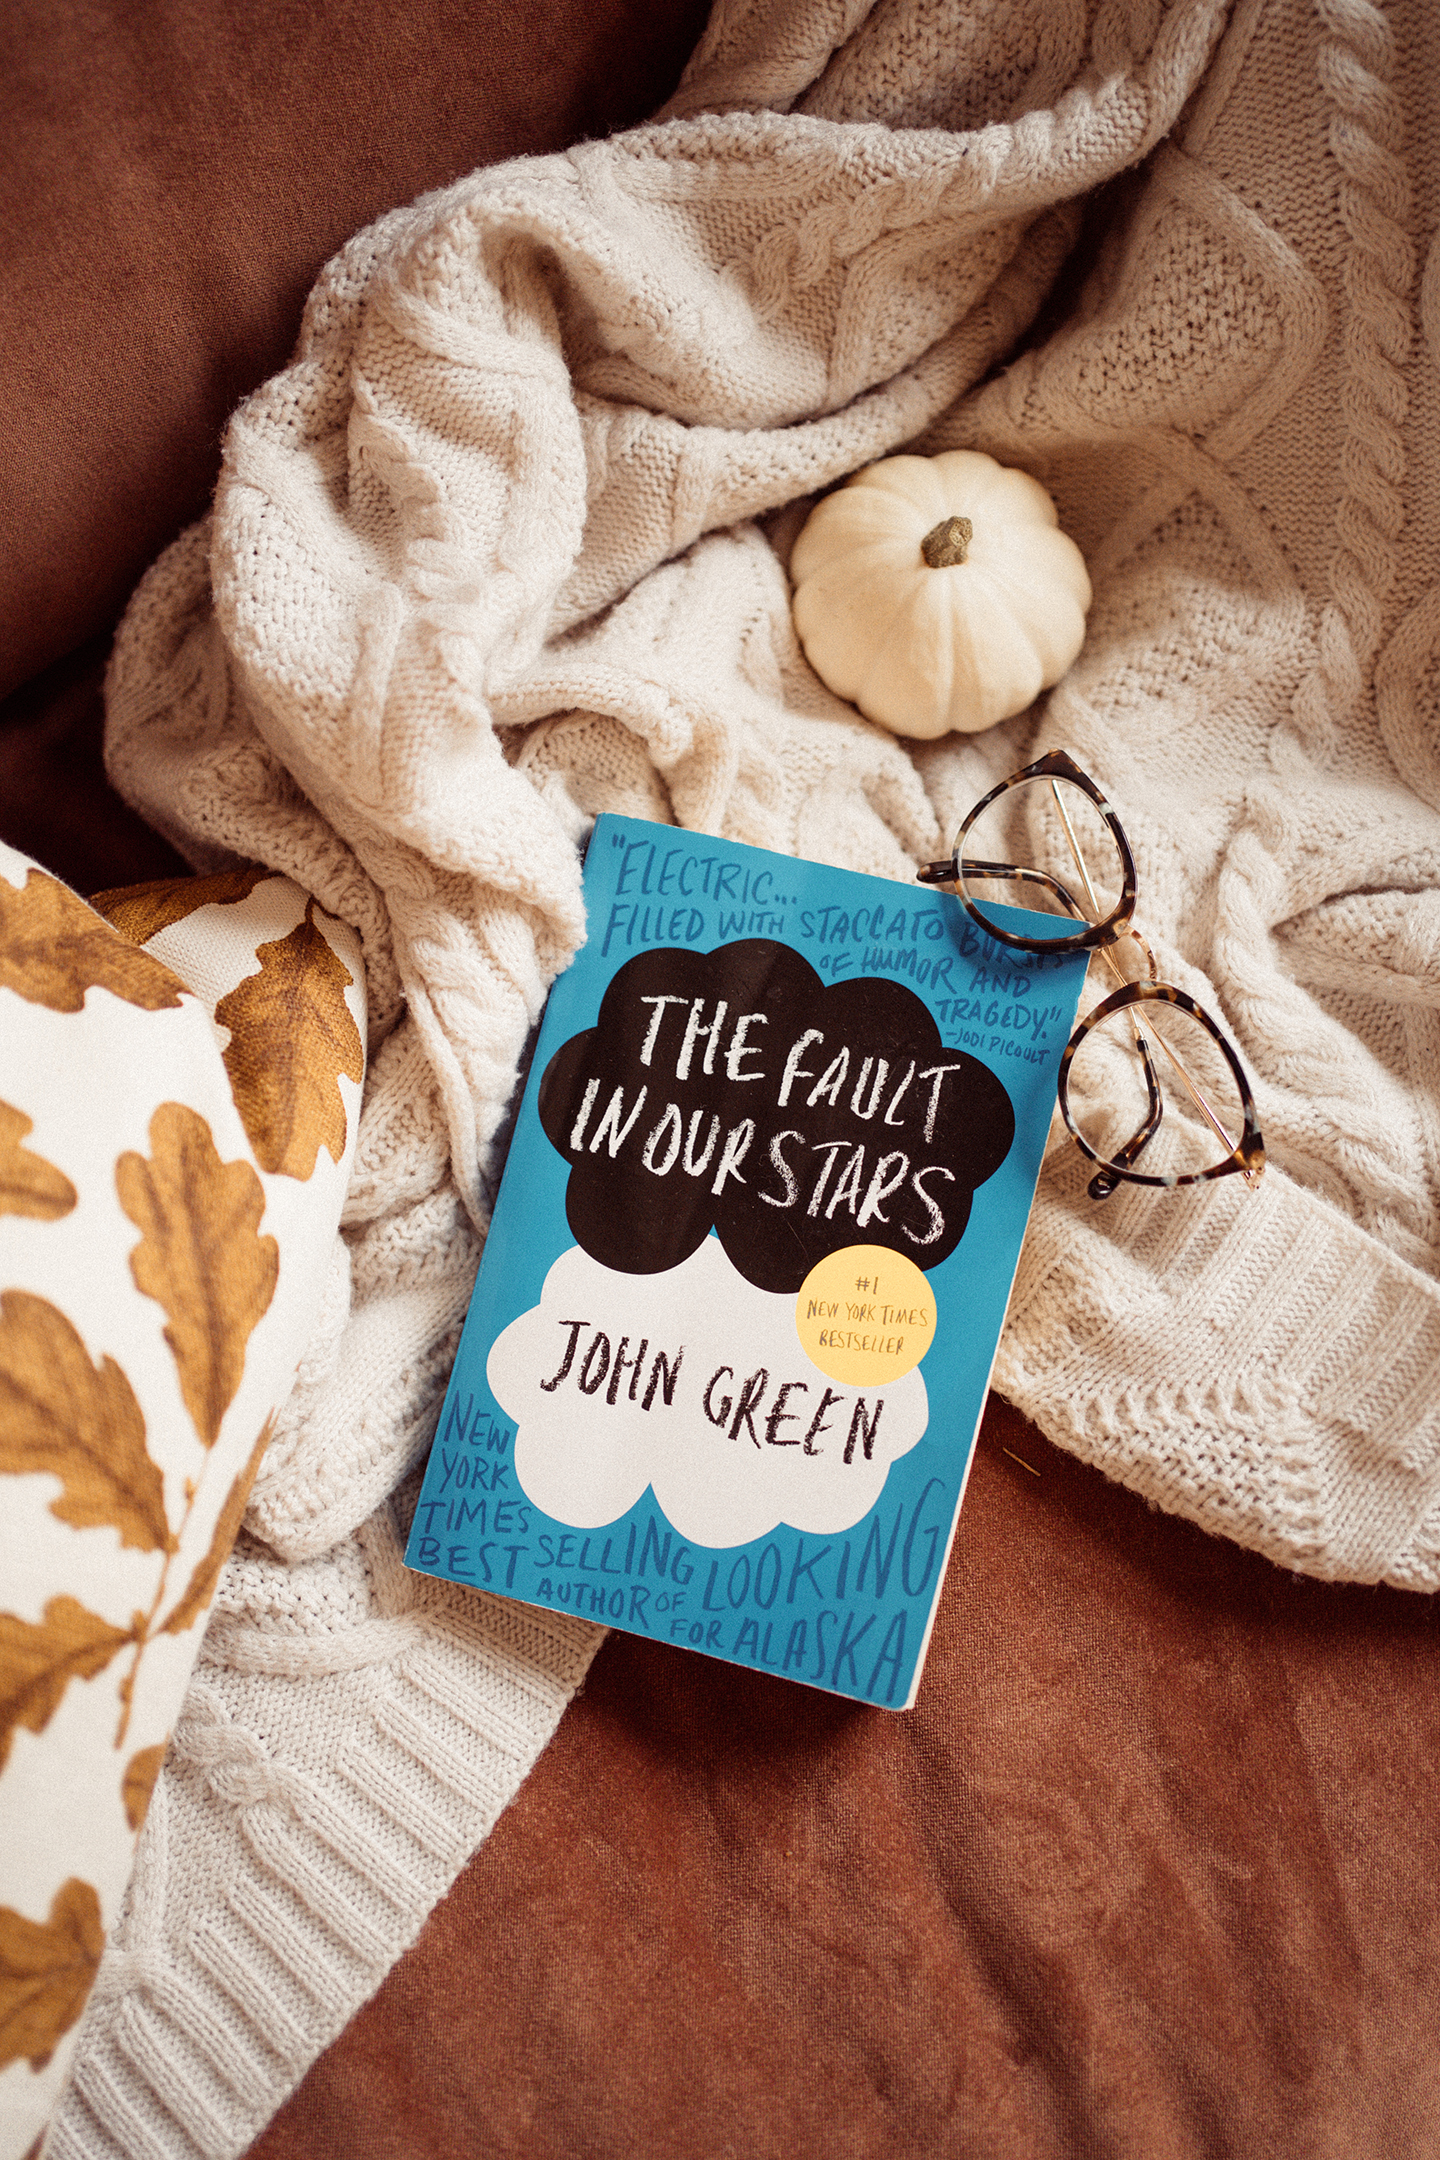 the-fault-in-our-stars-john-green-01334